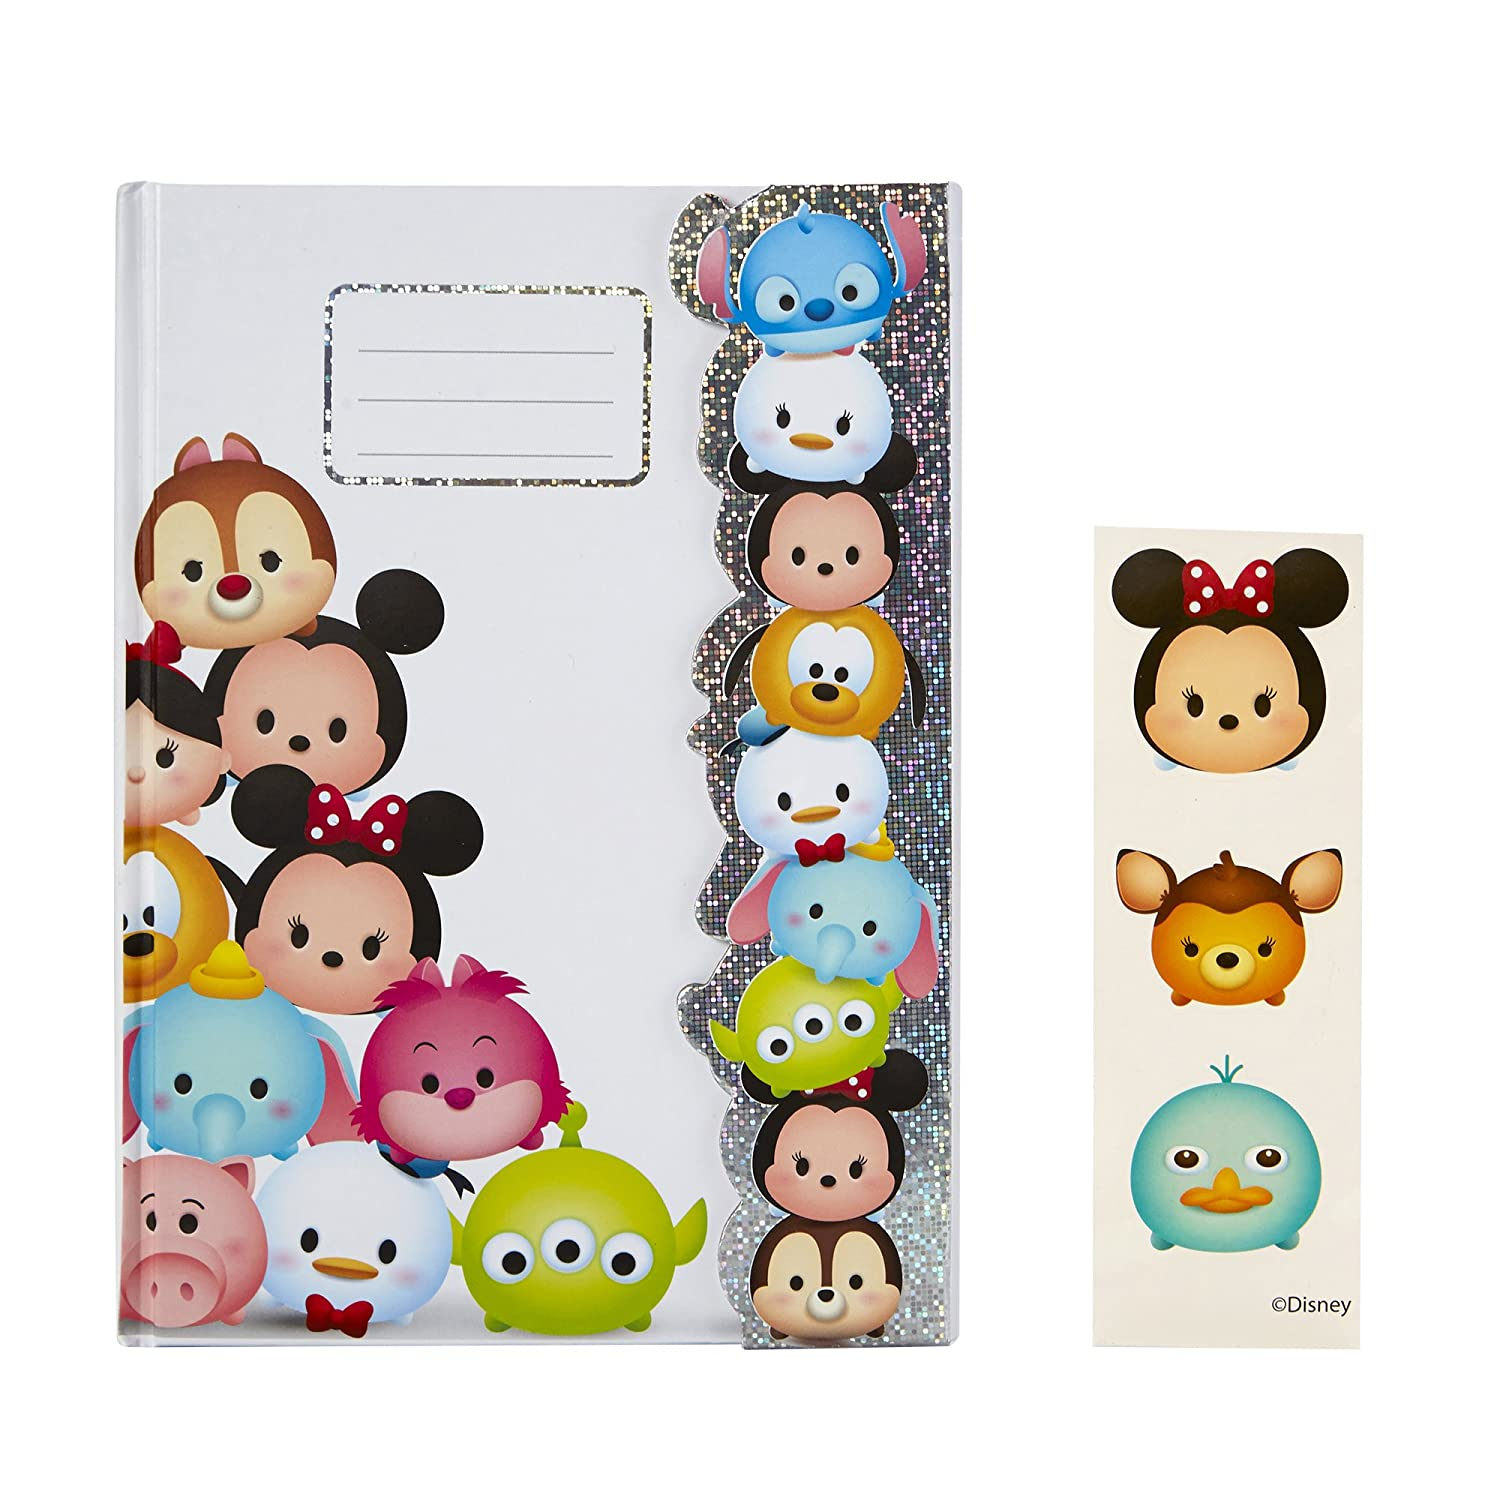 TSUM TSUM Journal Jakks 09115